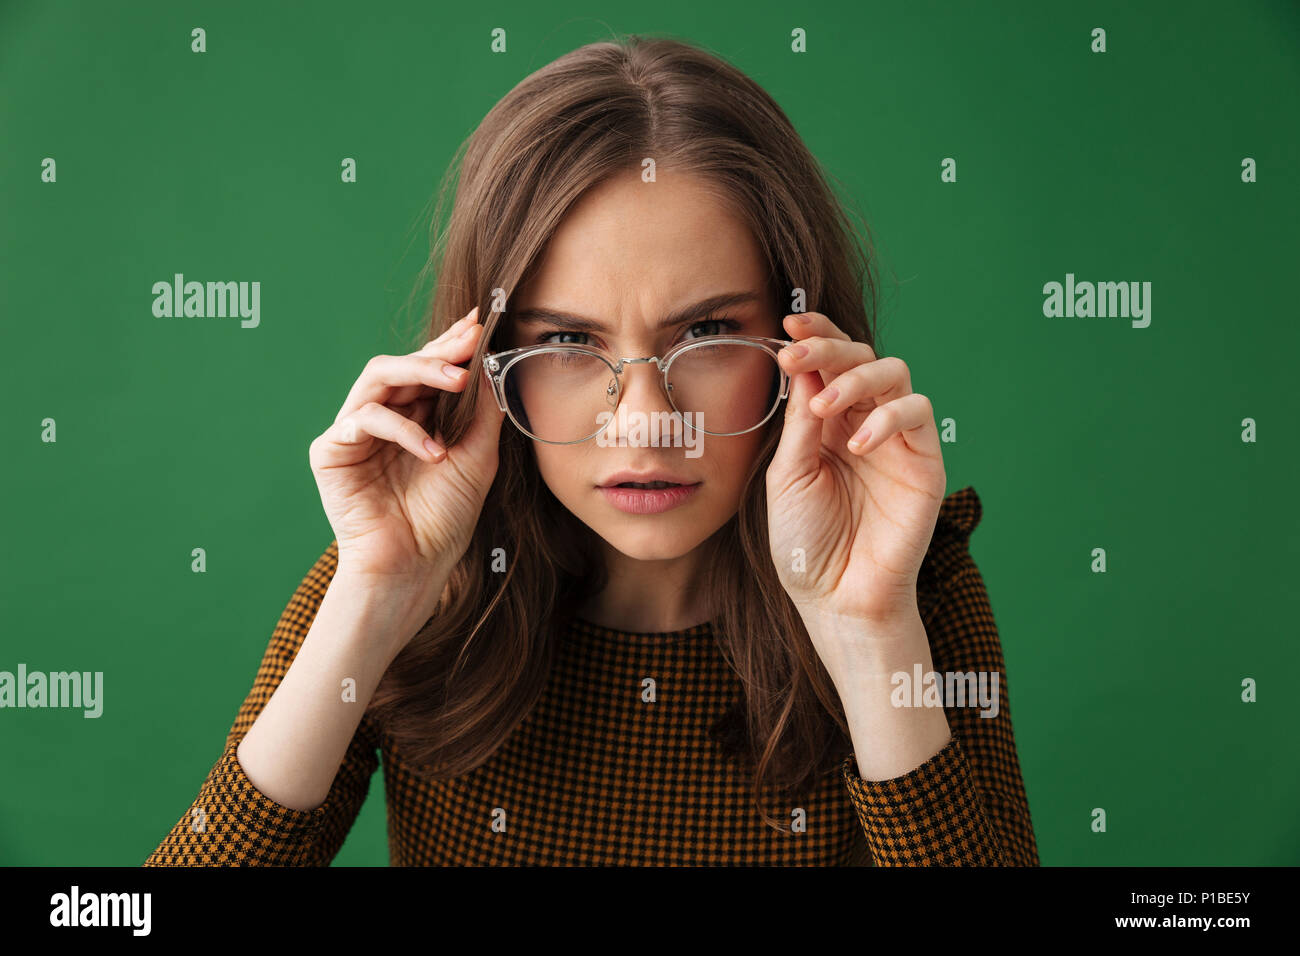 a27081bebd9 Image of young serious woman standing isolated over green background  wearing glasses looking camera. -